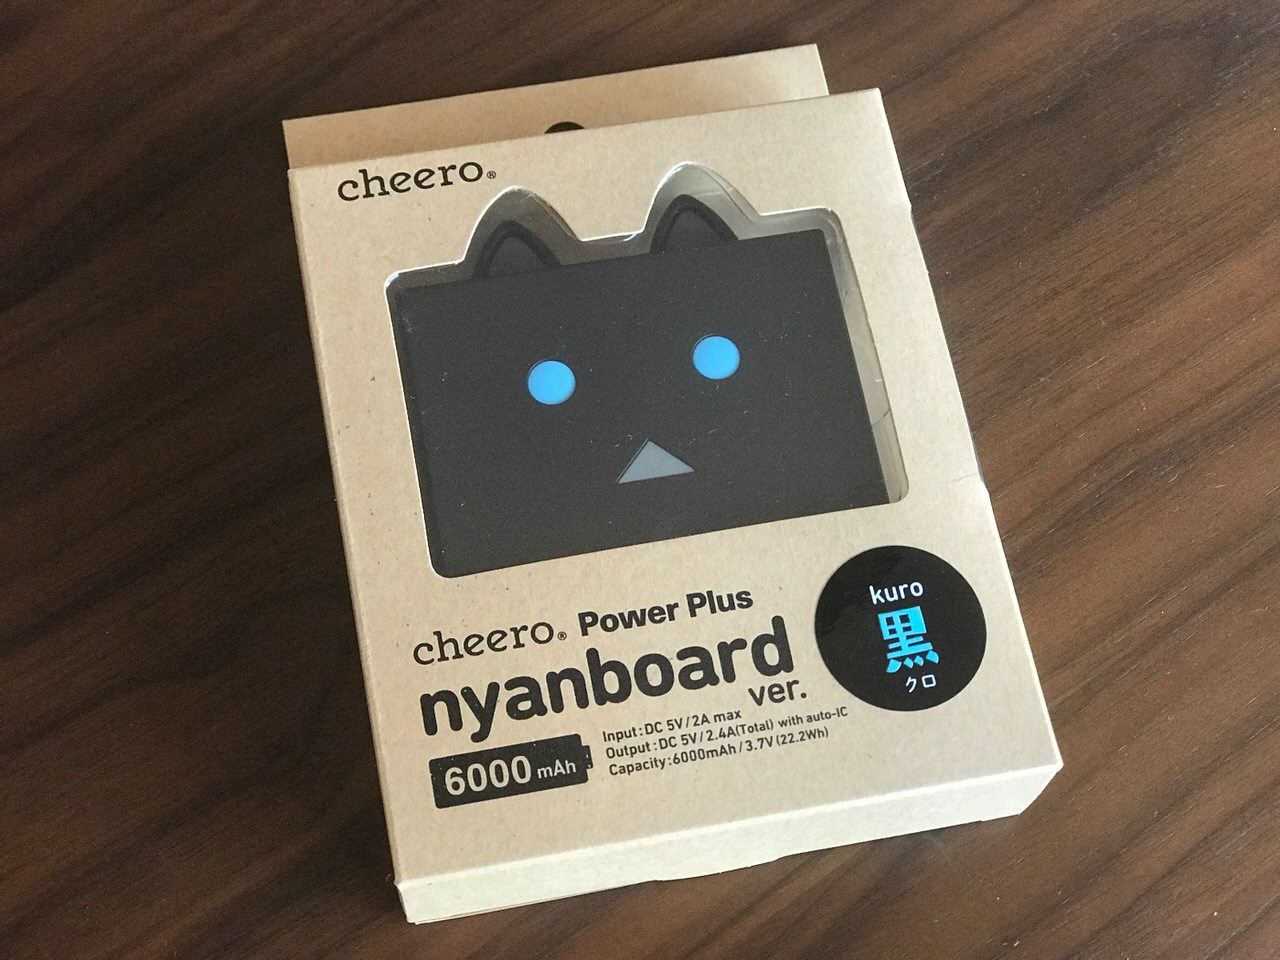 Nyanboard 3696